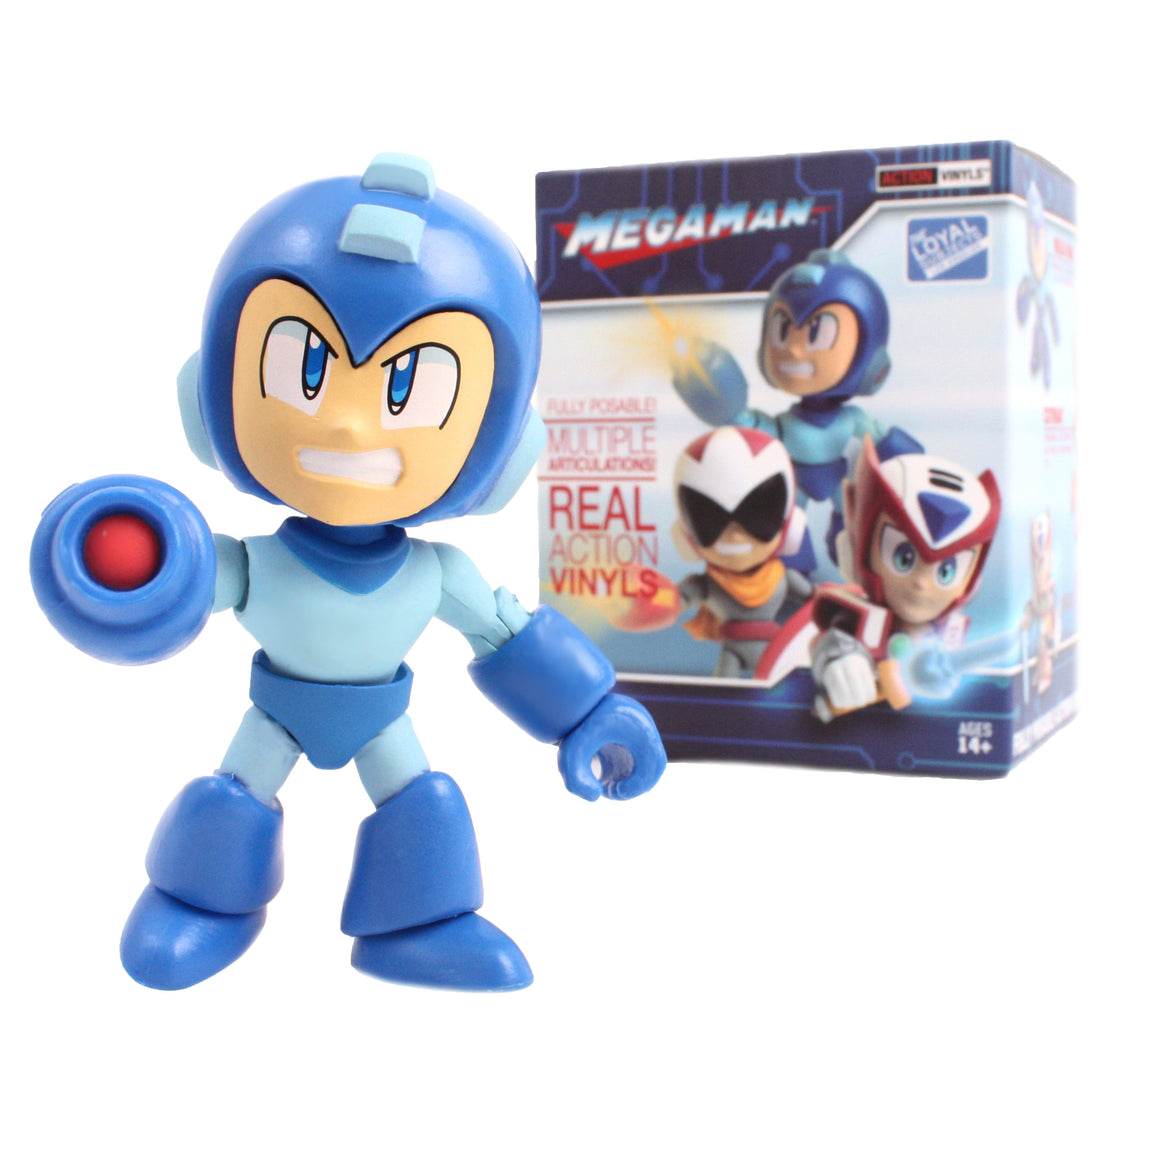 Mega Man Wave 1 Action Vinyls Blind Box Series by The Loyal Subjects